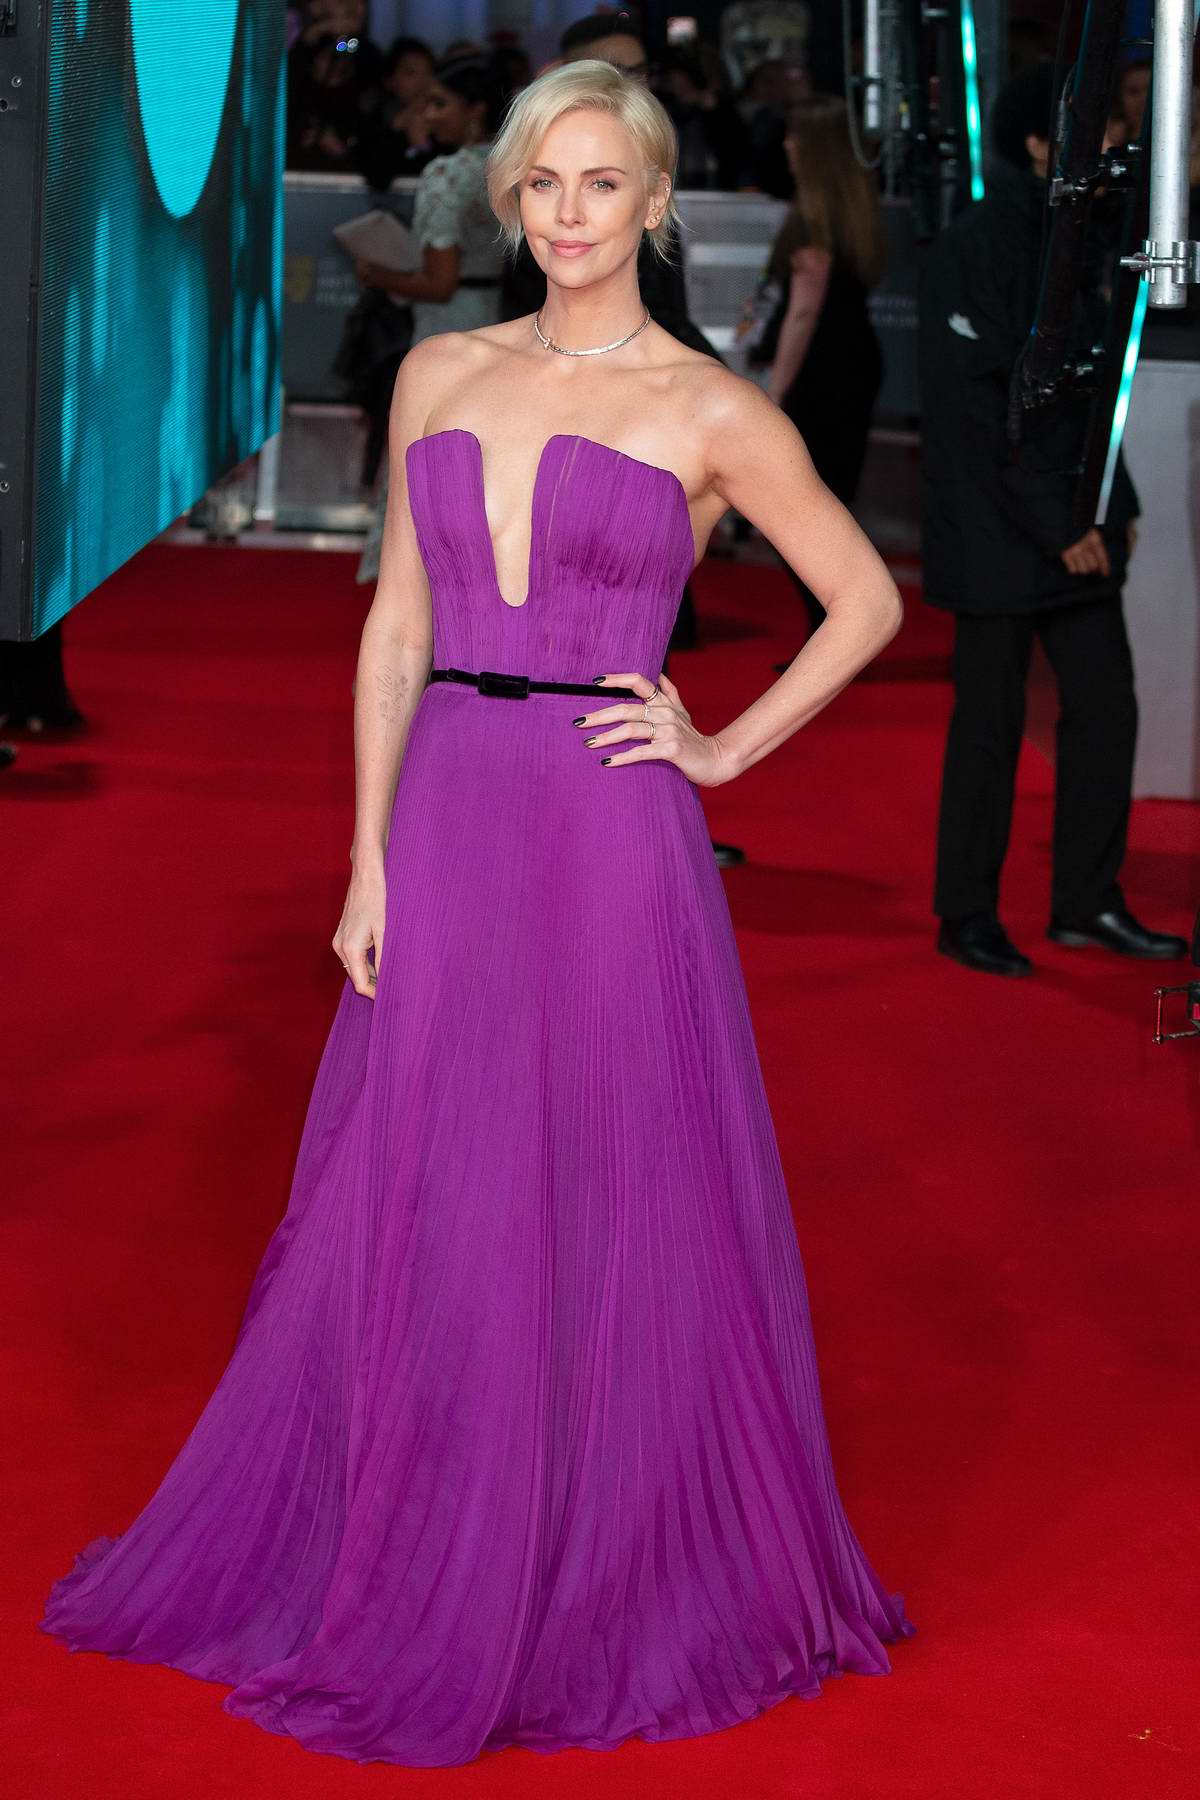 Charlize Theron attends the 73rd EE British Academy Film Awards at Royal Albert Hall in London, UK